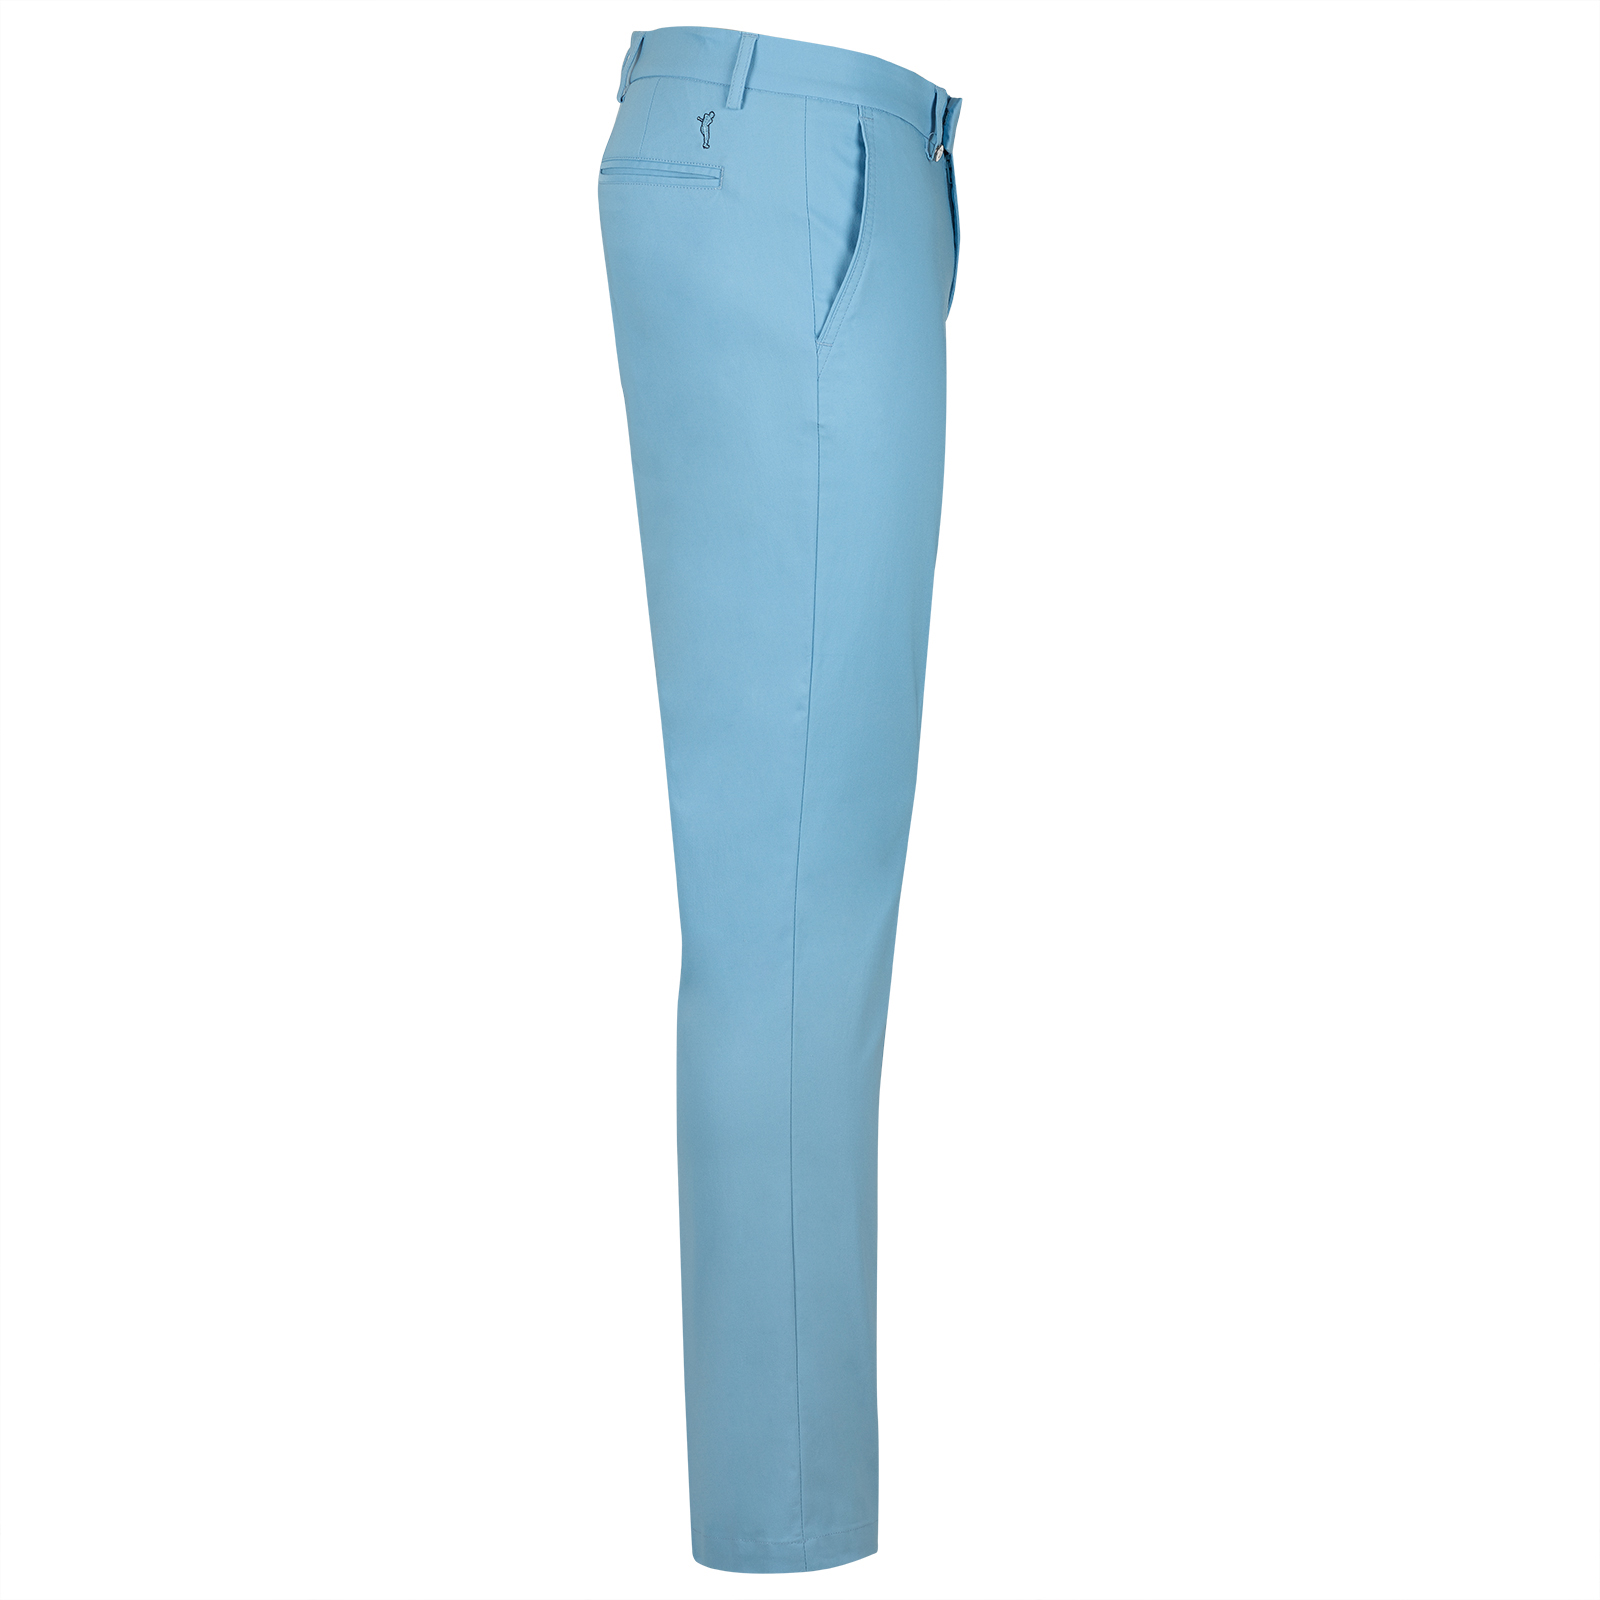 Cotton Blend Herren Funktions-Golfhose in Extra Slim mit Cold Protection